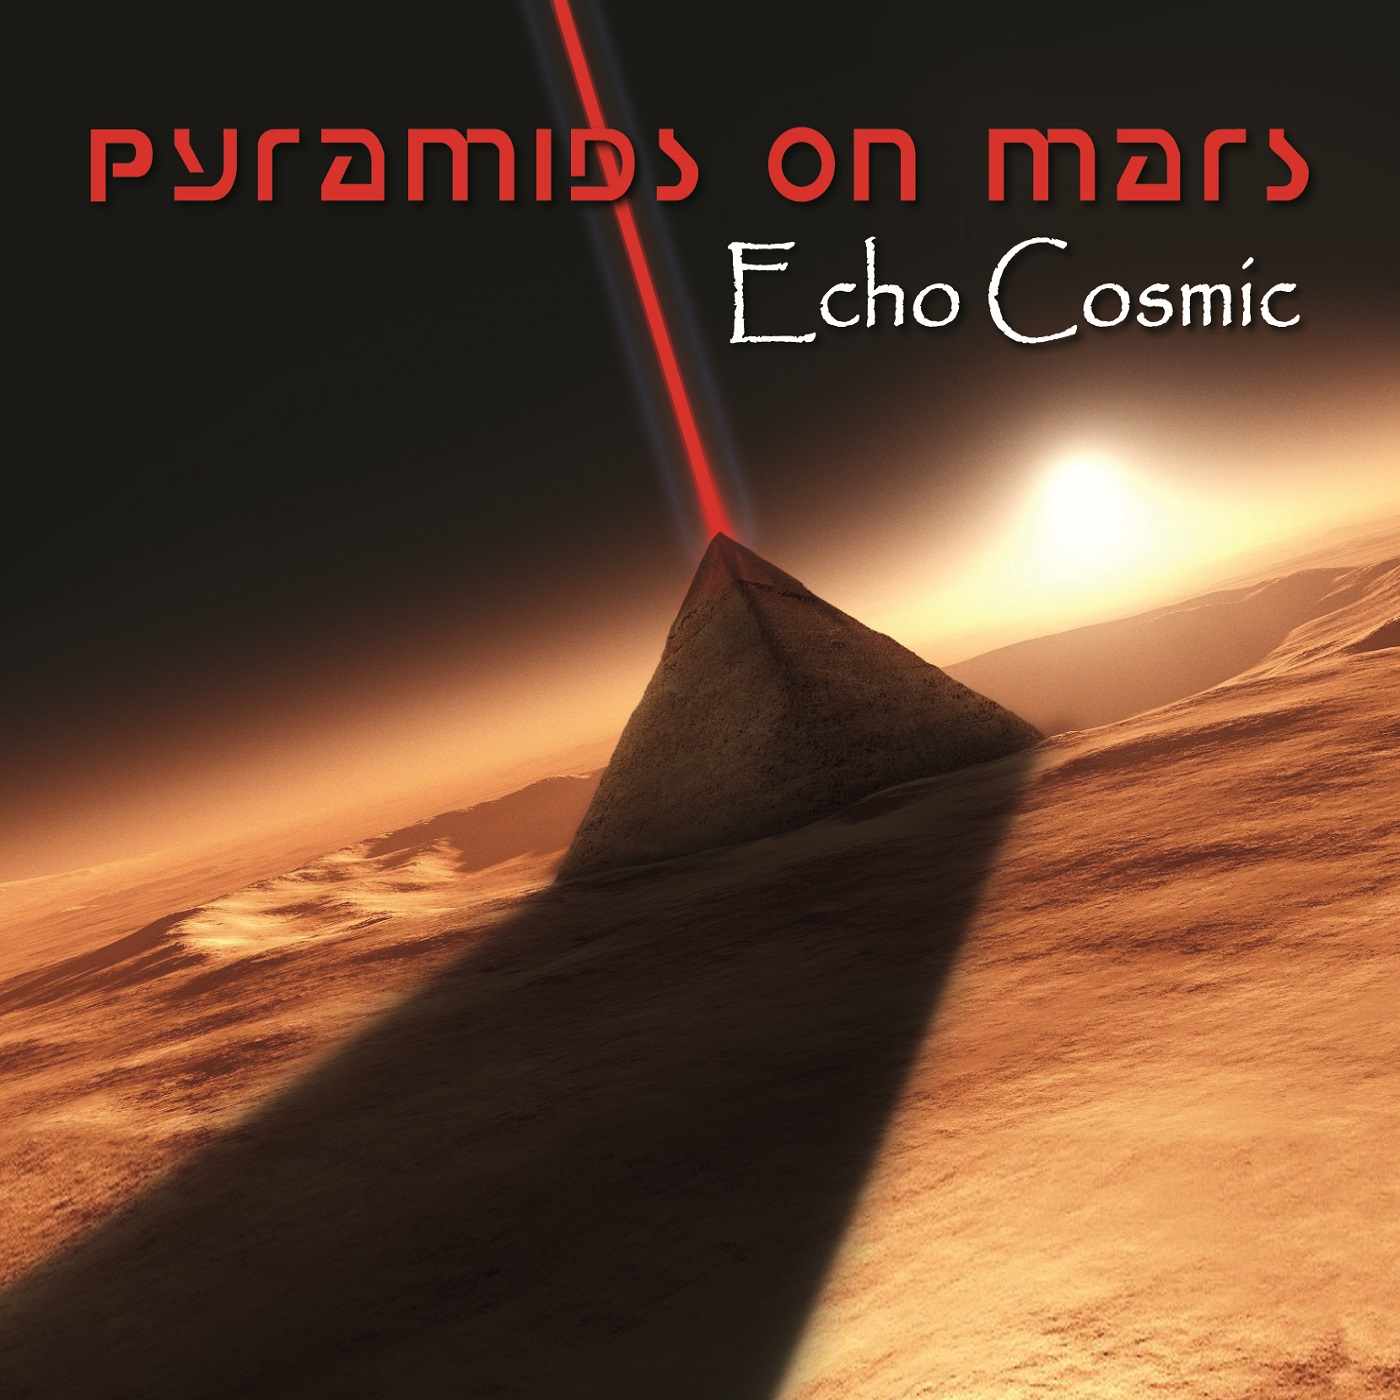 Pyramids on Mars – Echo Cosmic Review